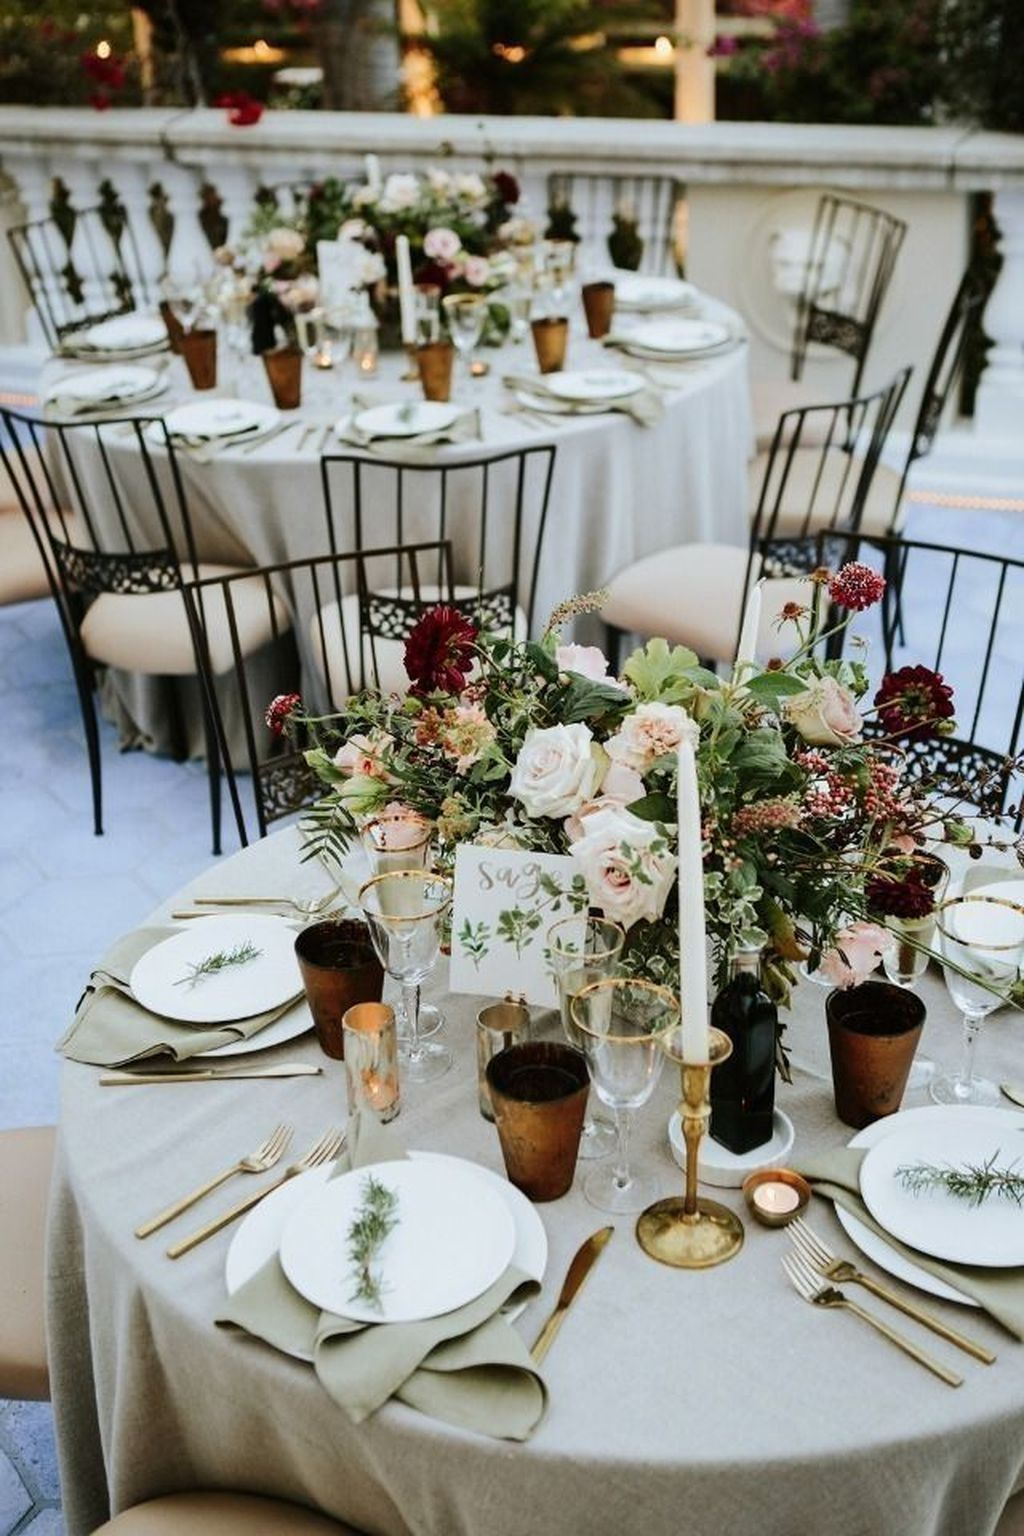 45 Fashionable Winter Wedding Decoration Ideas On A Budget